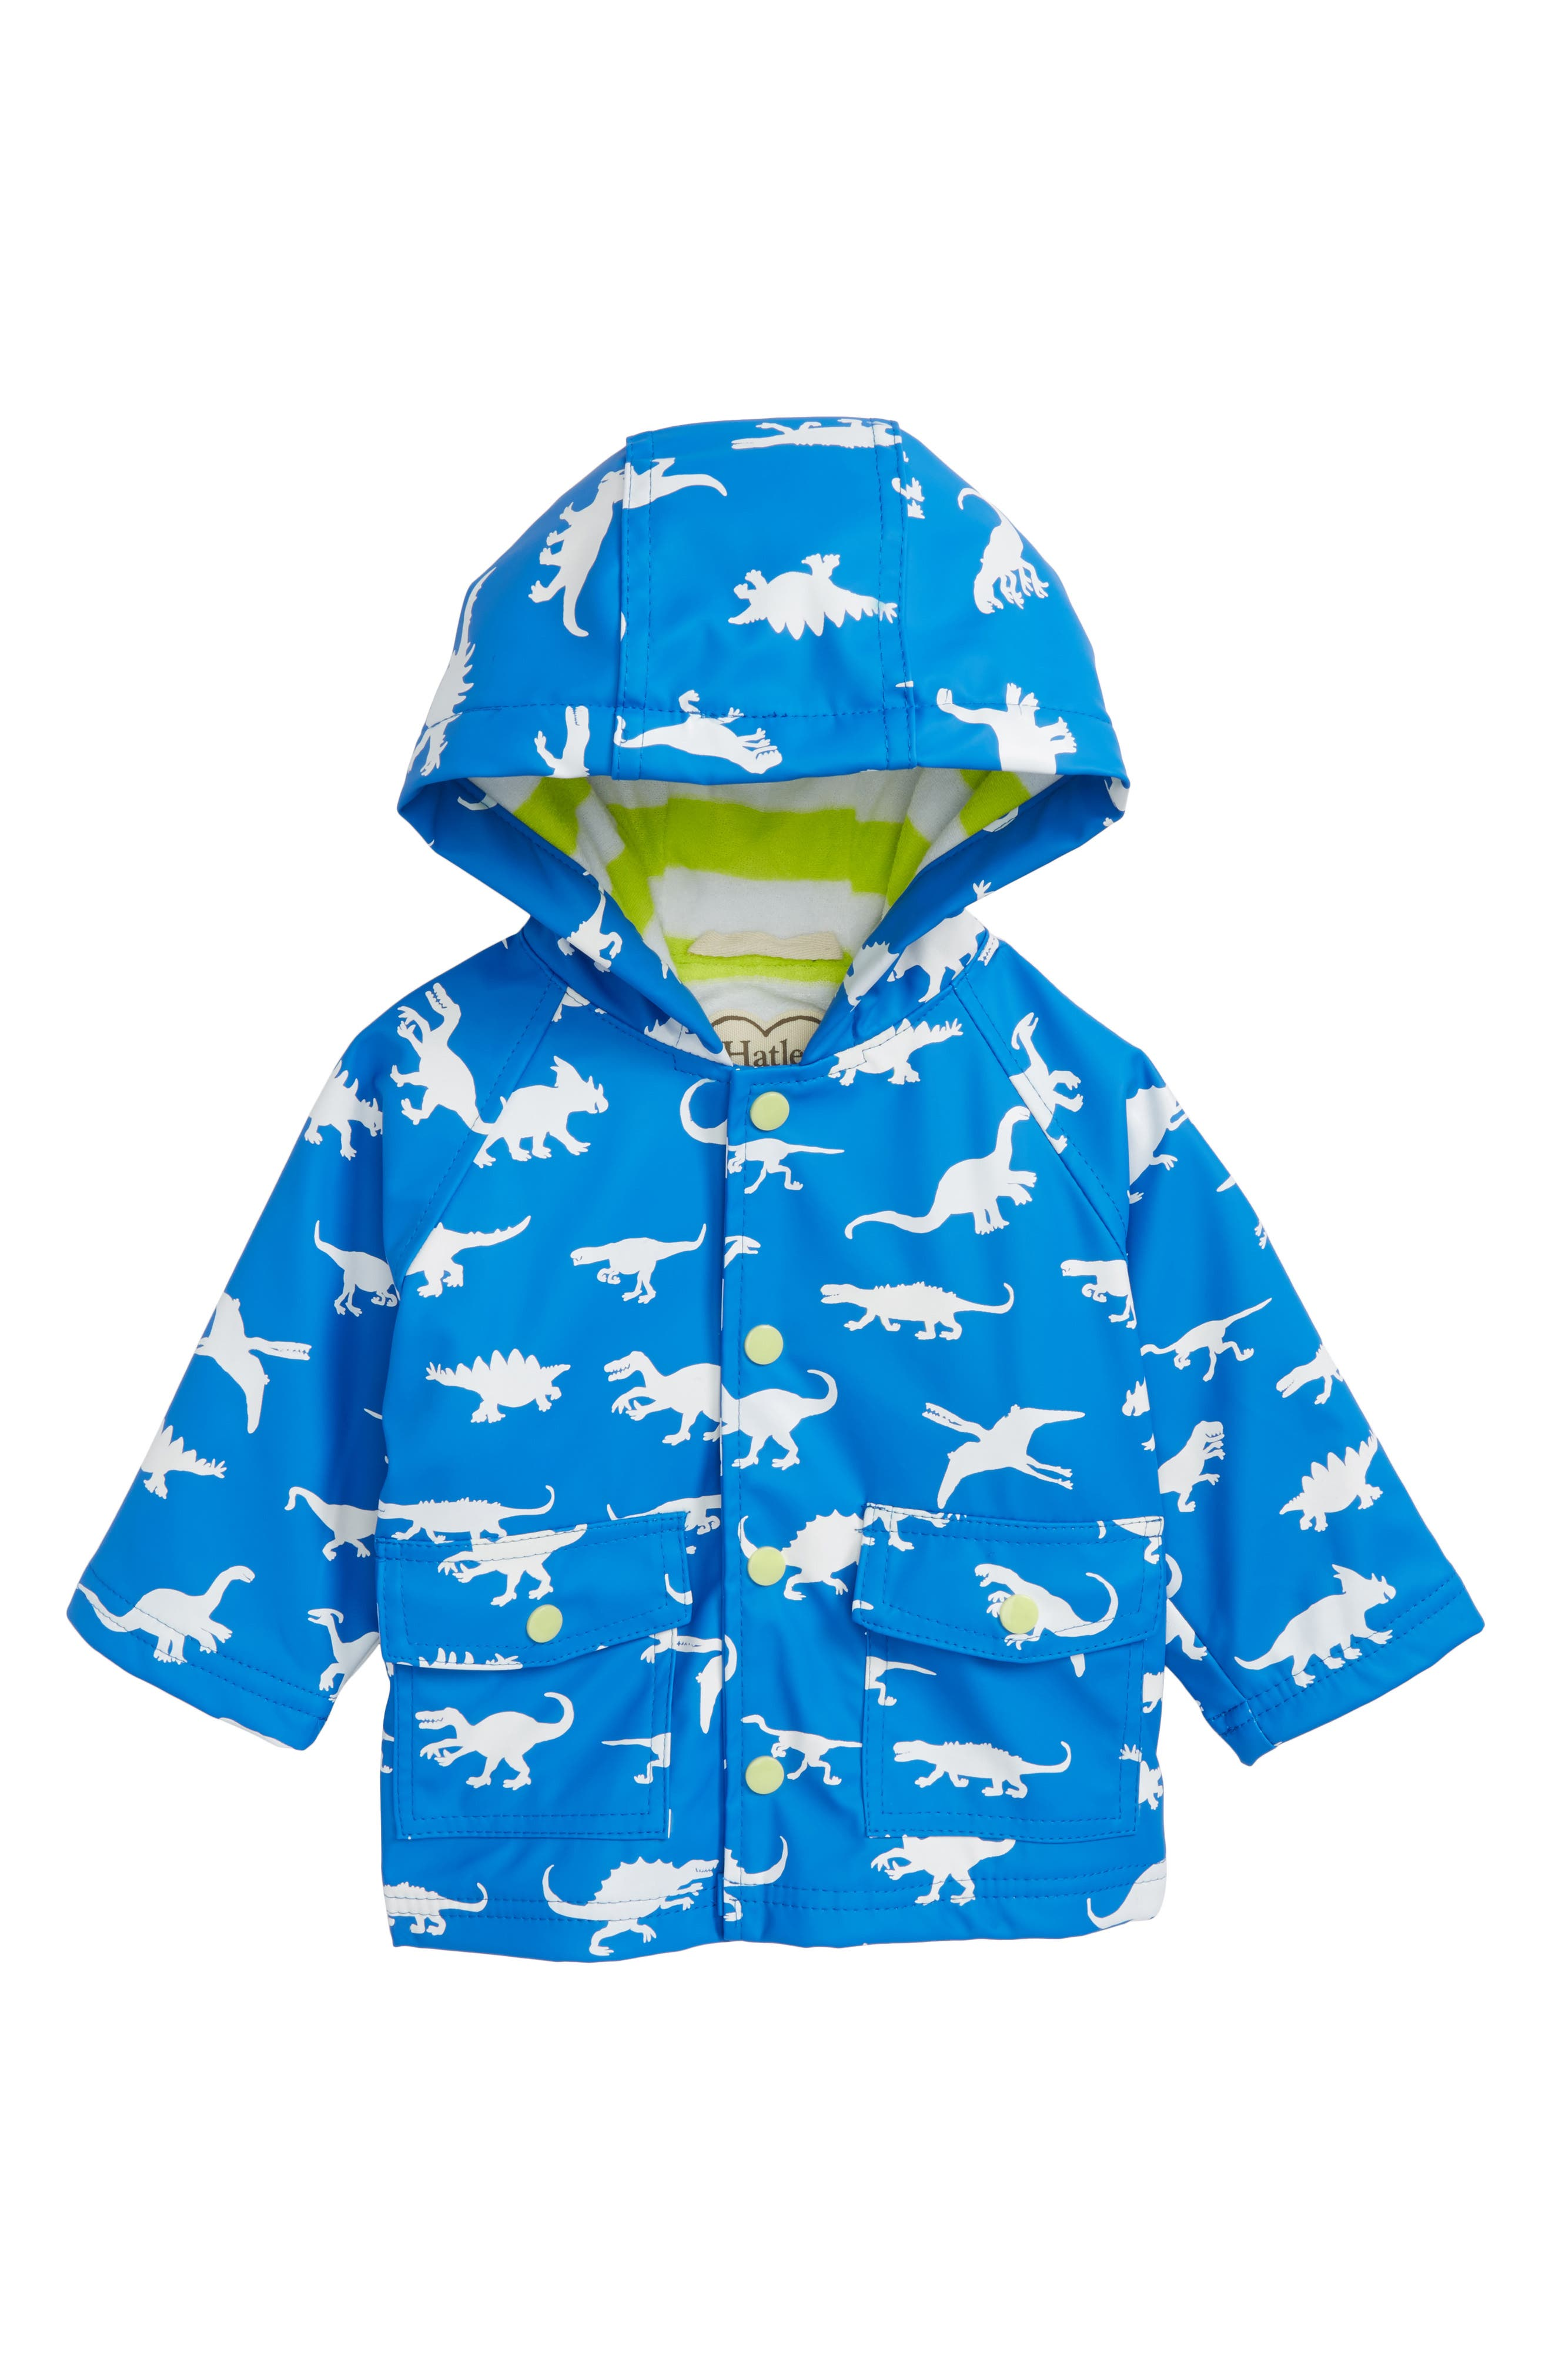 Main Image - Hatley Dinosaur Menagerie Color Changing Hooded Raincoat (Baby Boys)